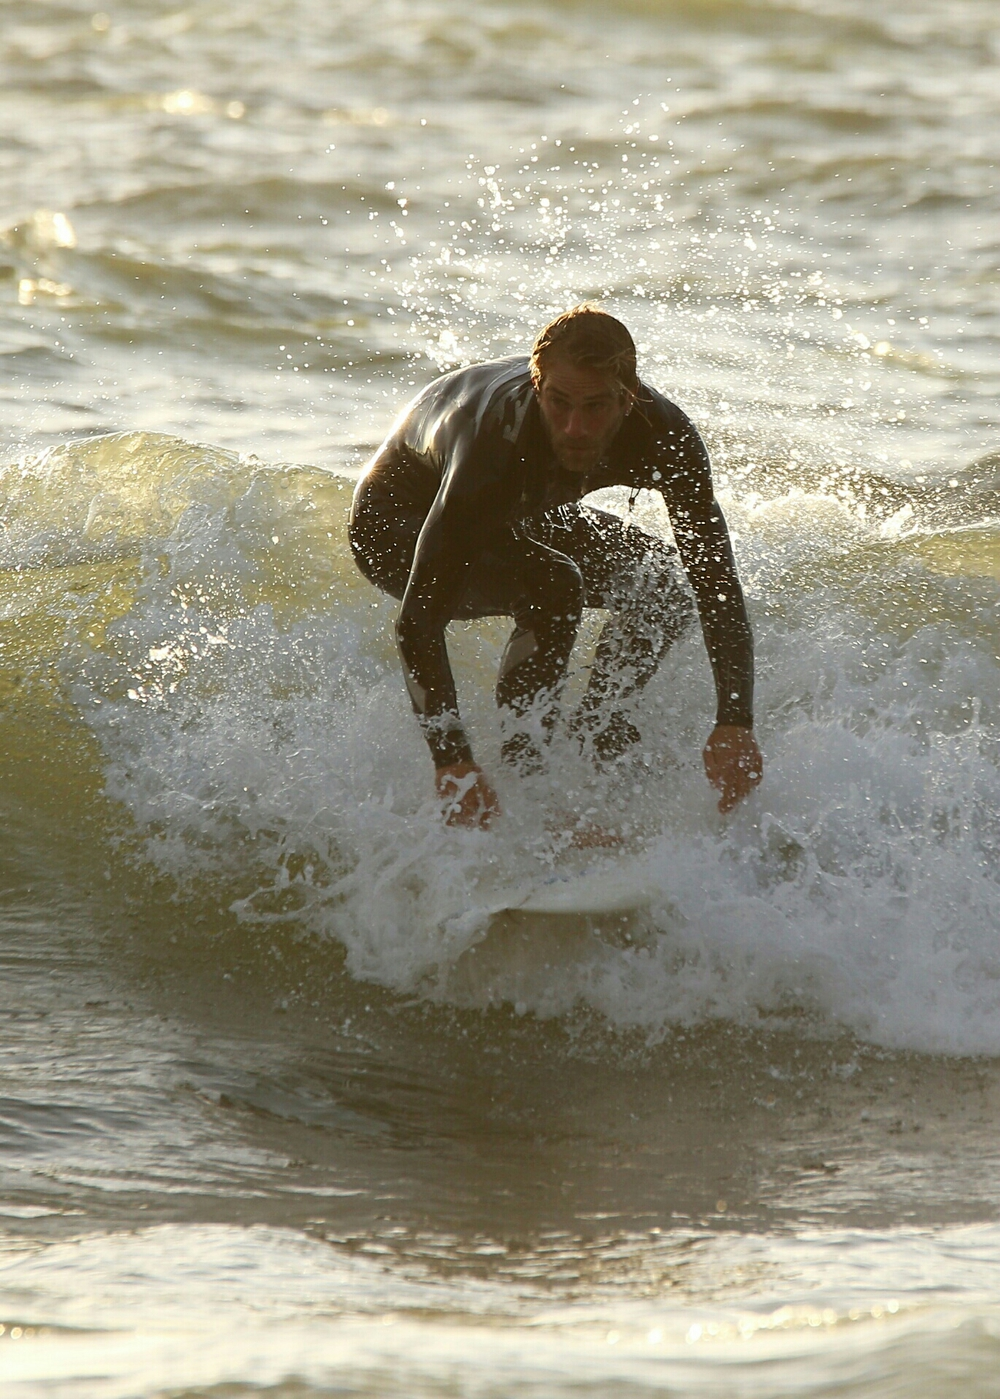 Riding on lemonade, Llangrannog surfing (Canon 6D)